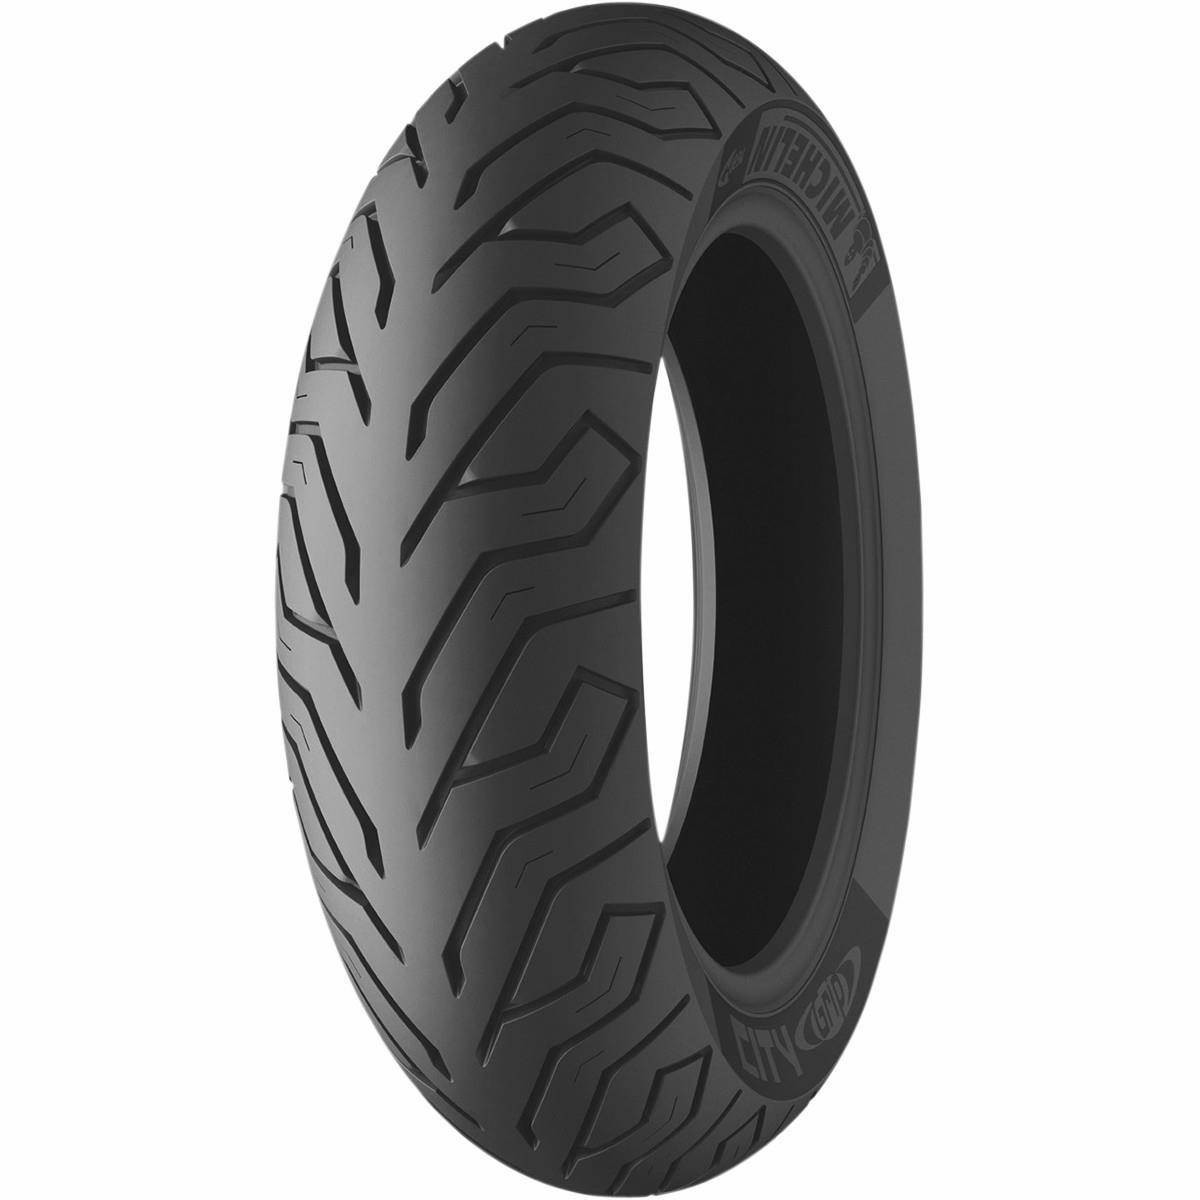 130/70-16 мотопокрышка CITY GRIP R TL